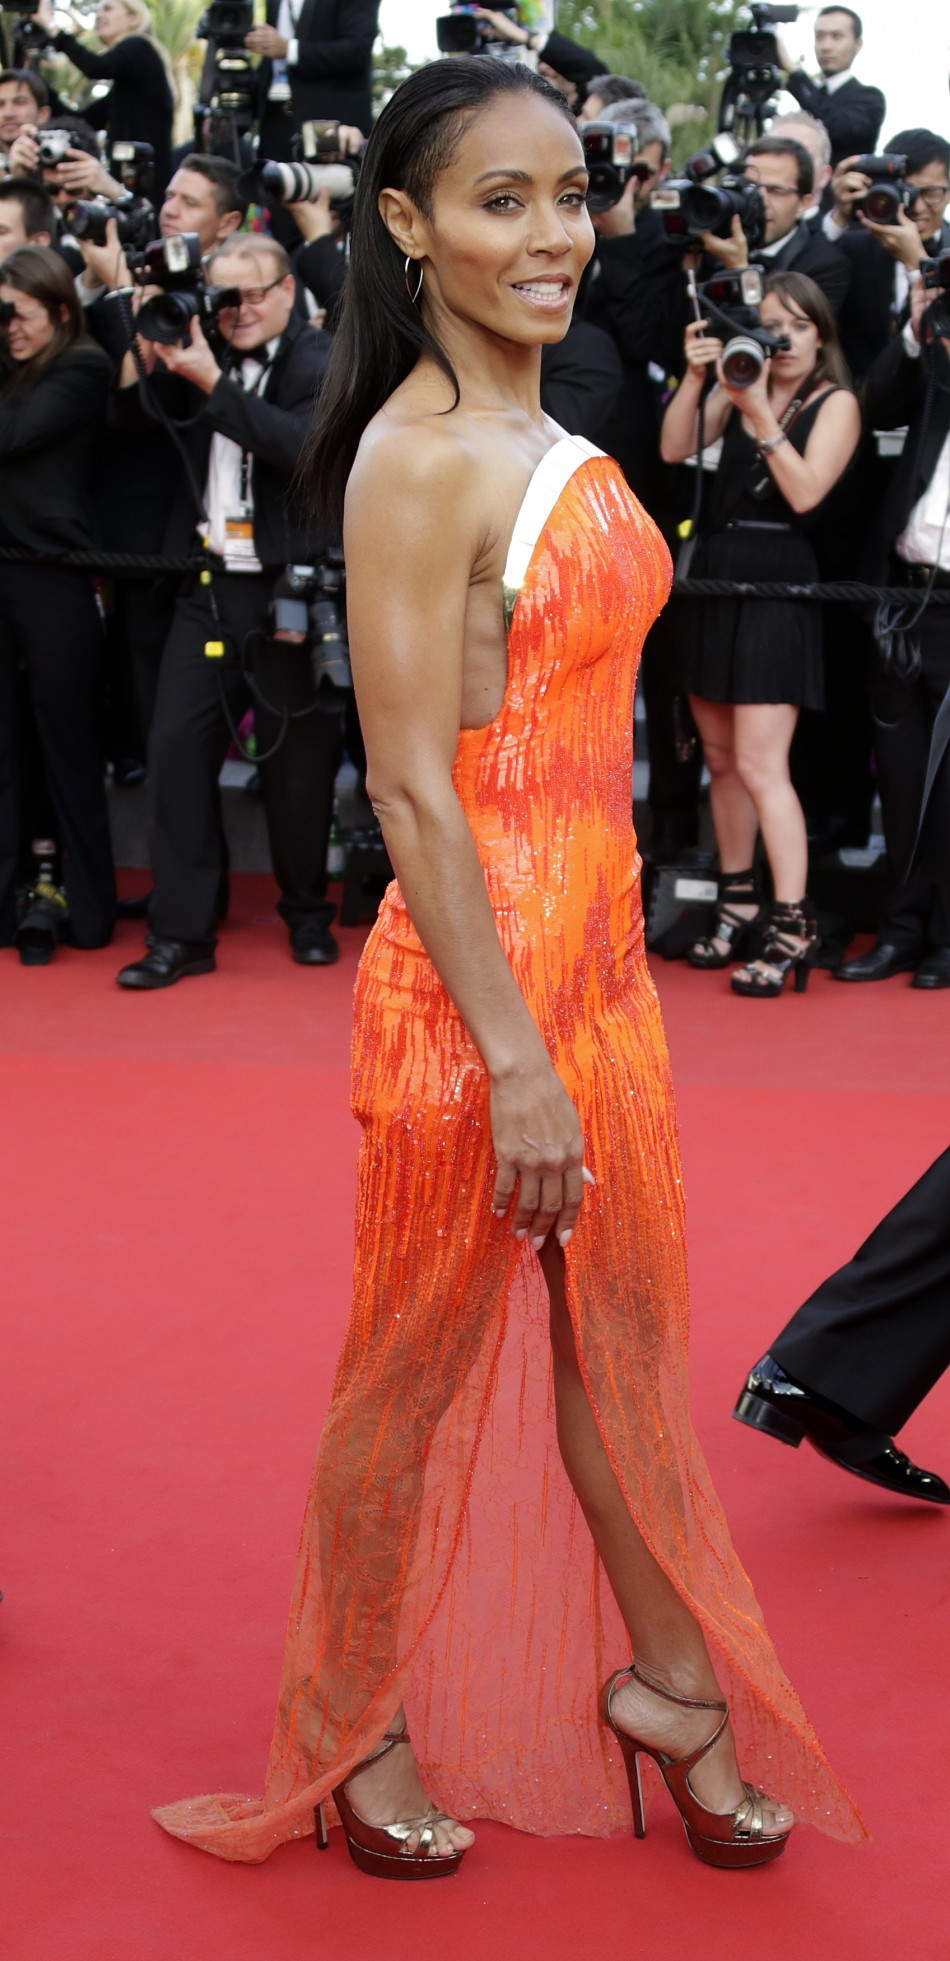 Cannes 2012 Red Carpet